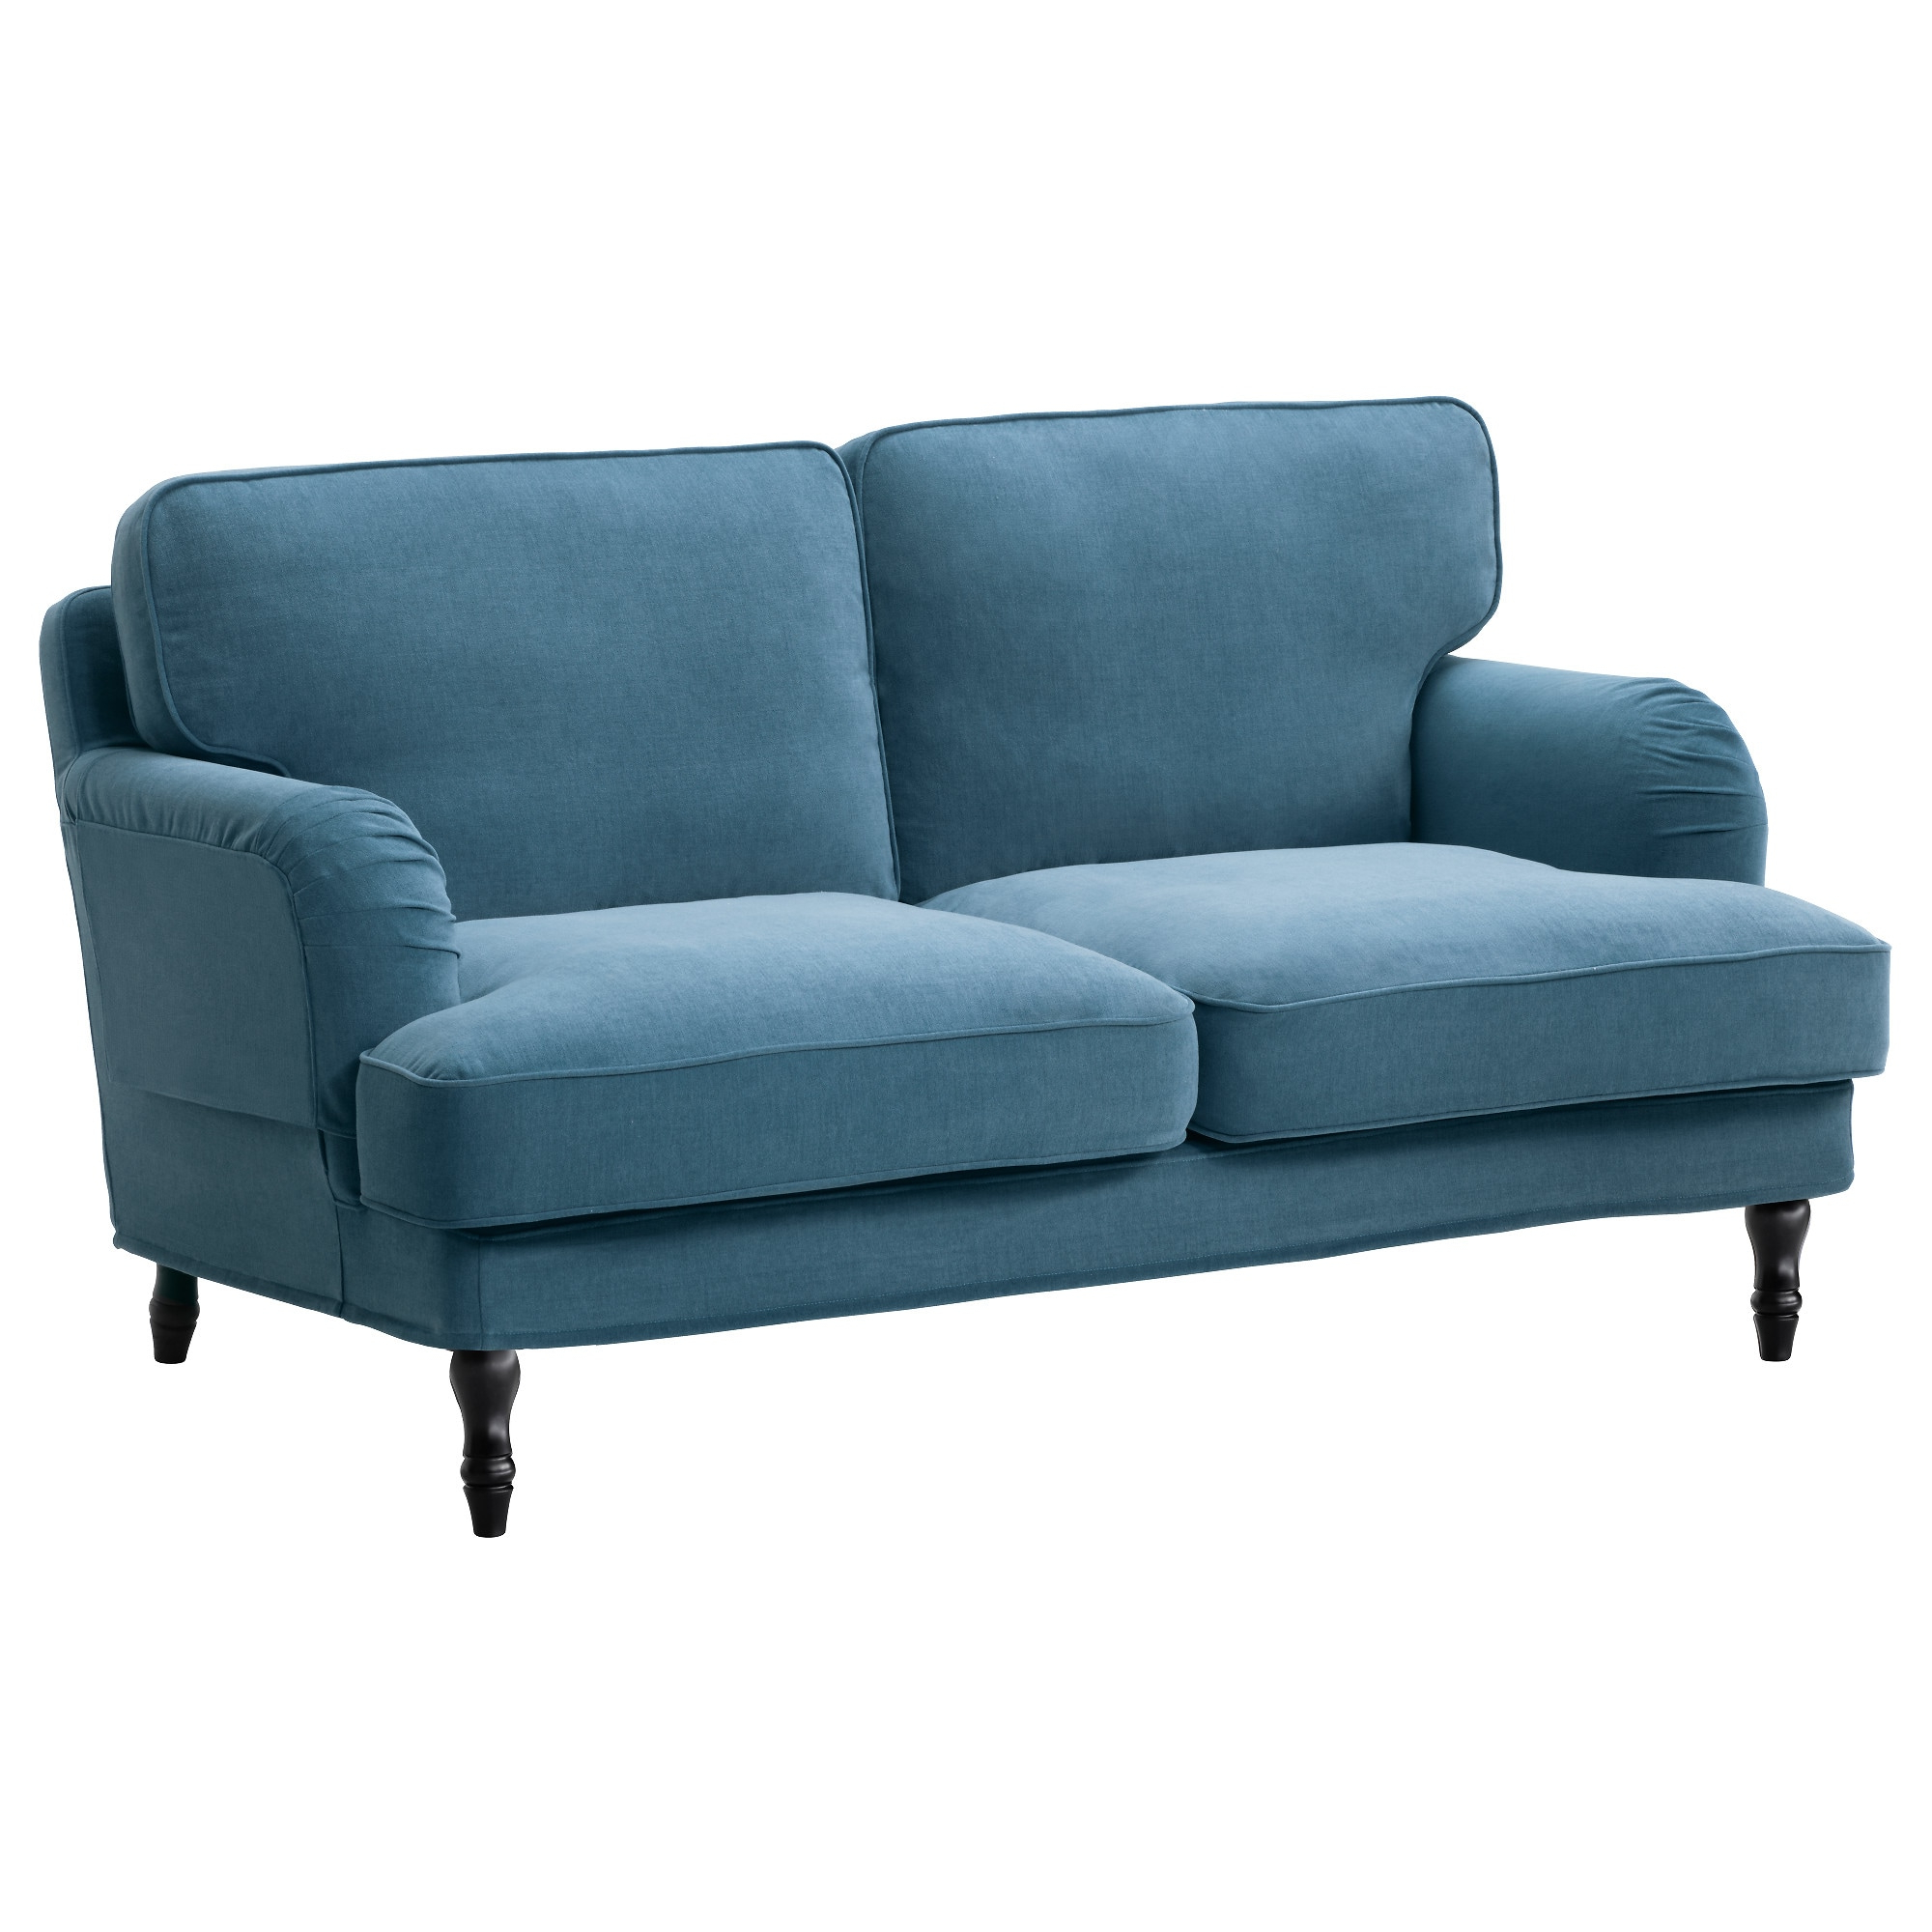 Best And Newest Owens Loveseats With Cushion Regarding Stocksund Loveseat, Ljungen Blue, Black/wood (Gallery 10 of 20)